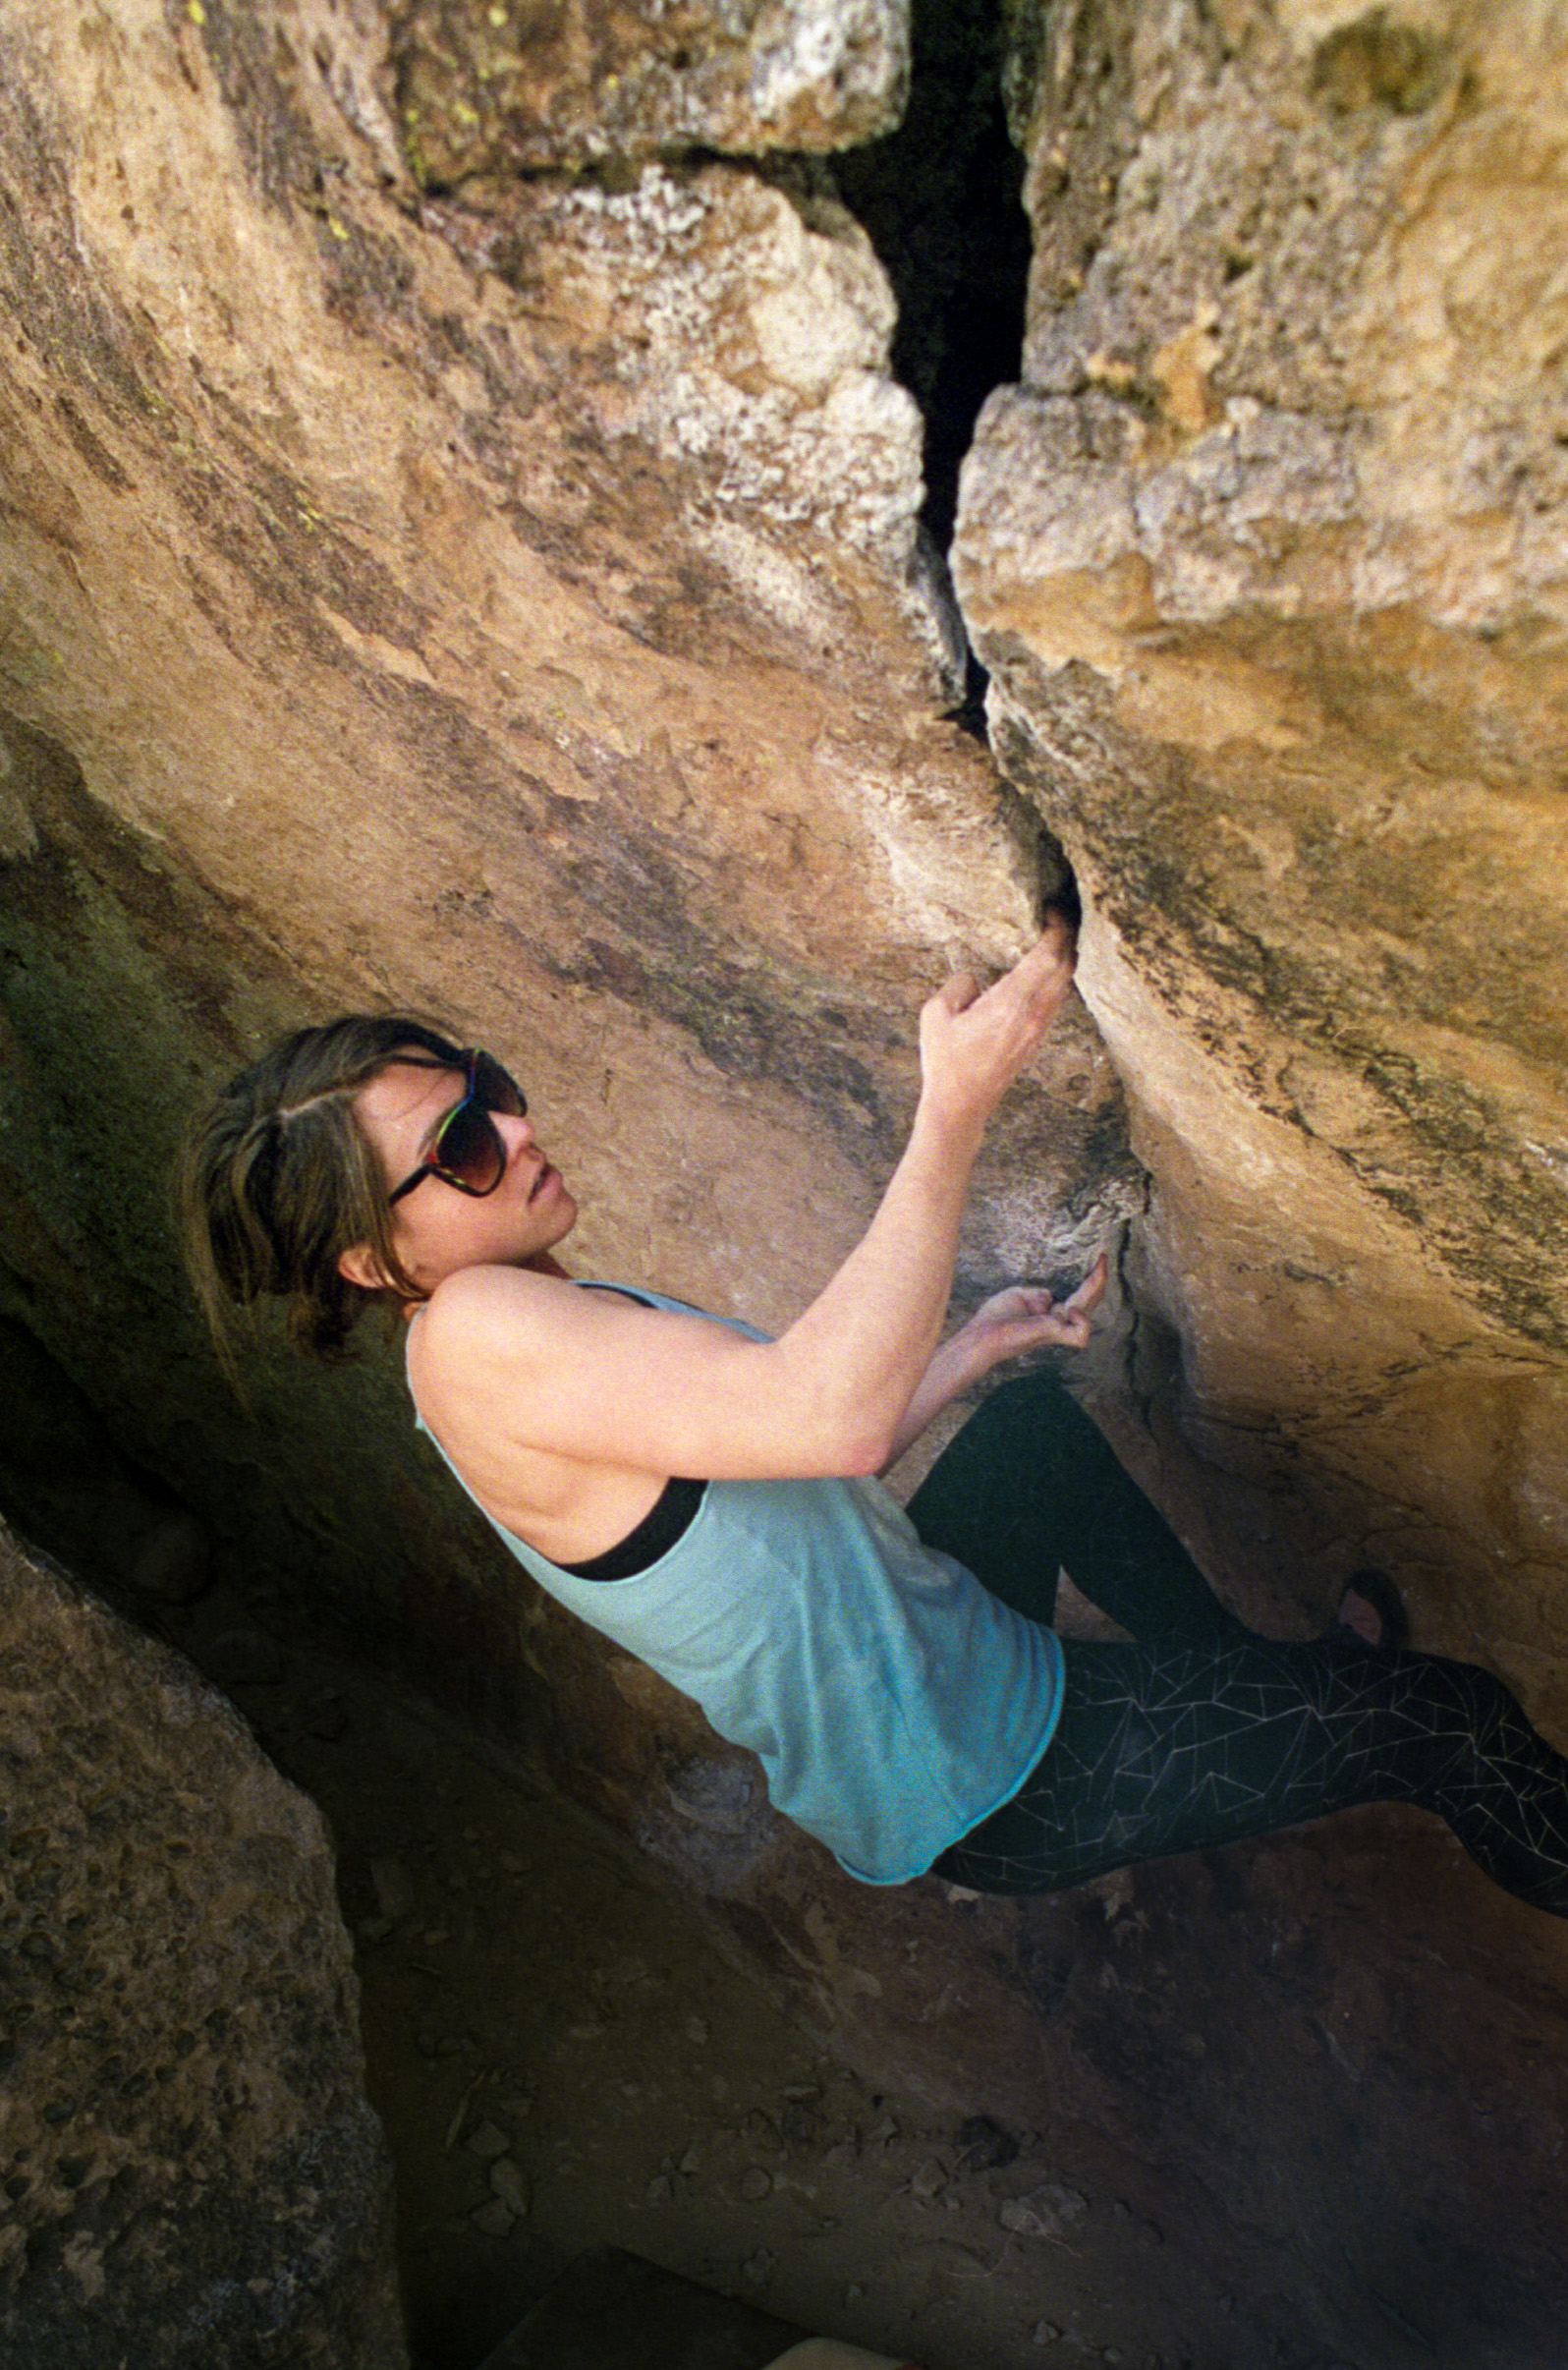 Danielle pulling hard on the Crack Problem, V4, in the Sad's.